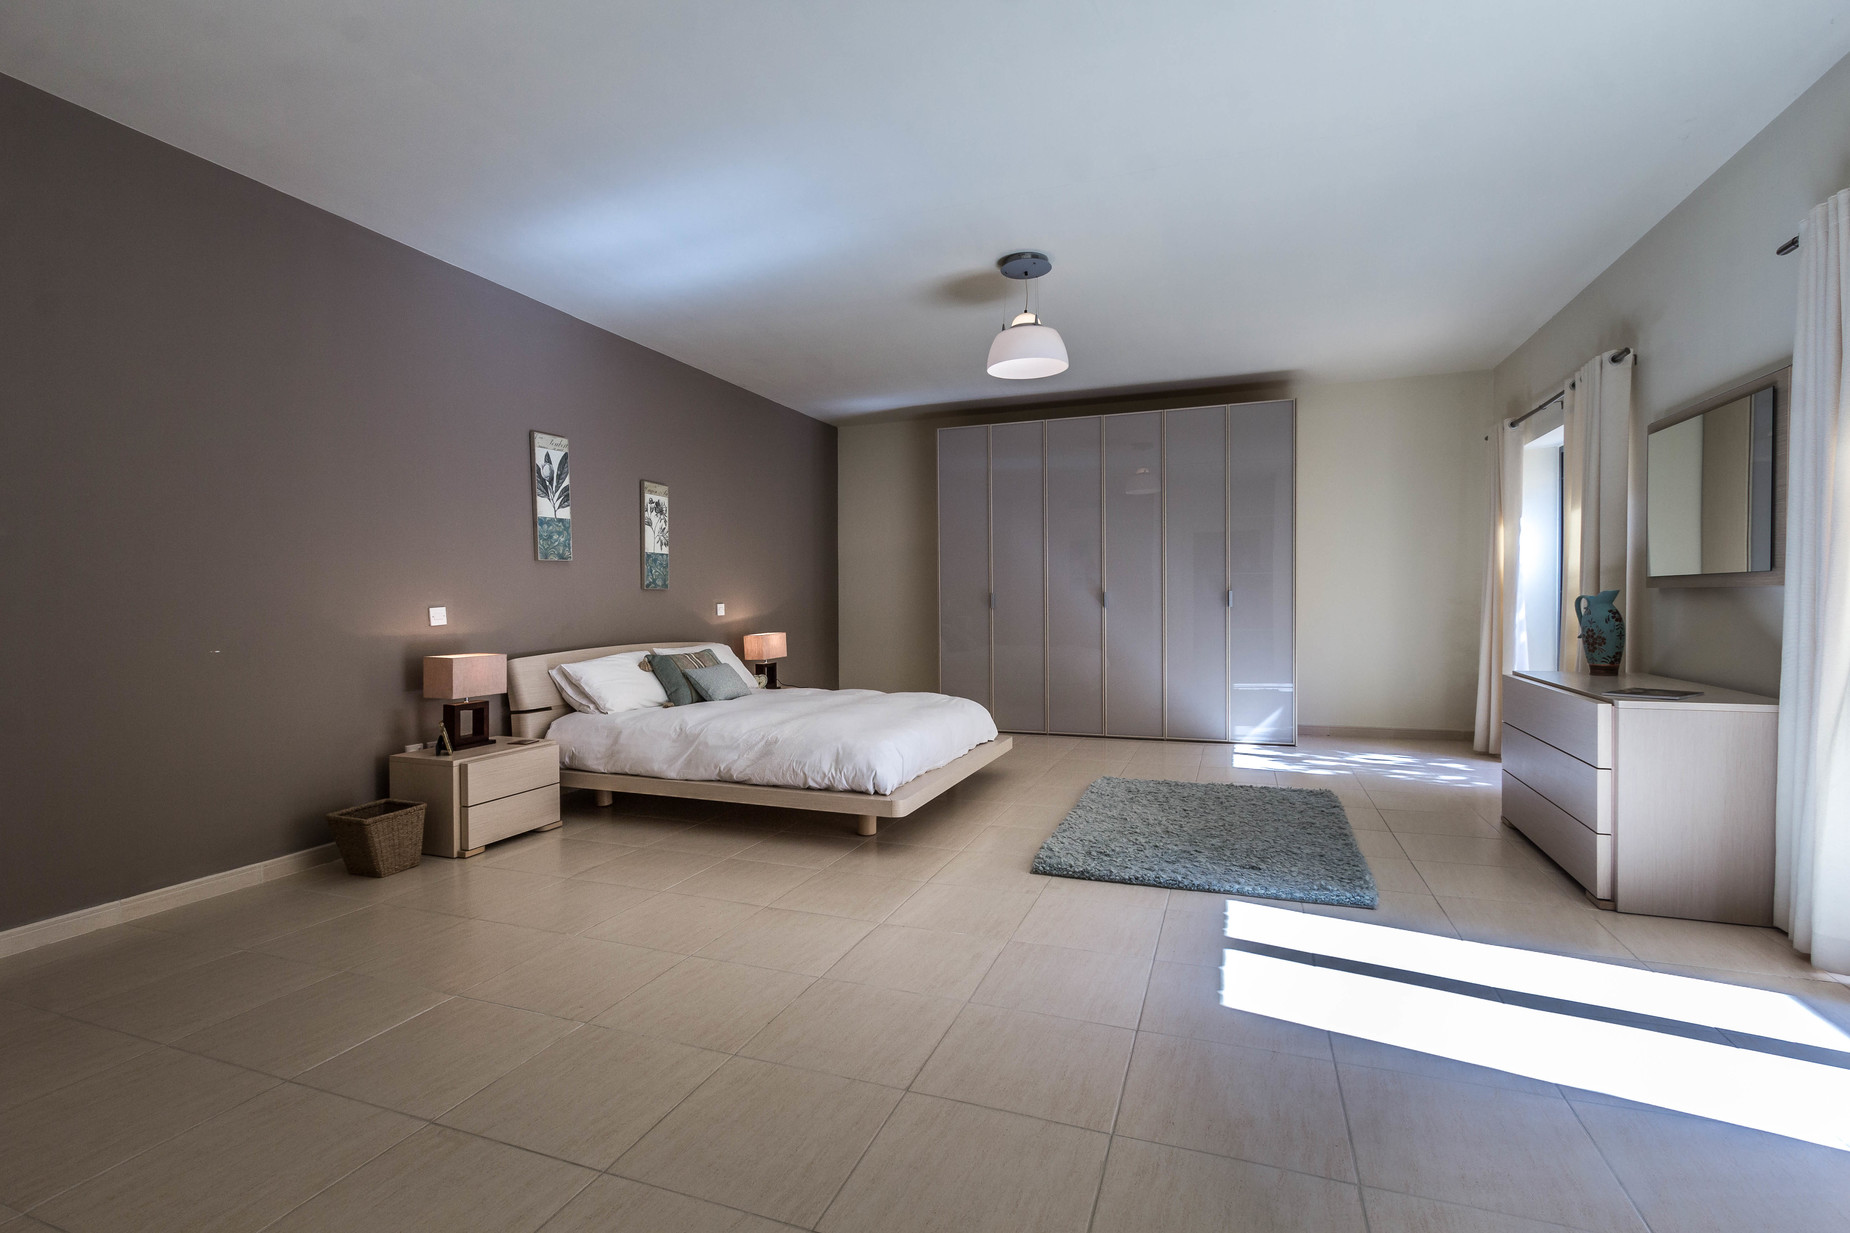 4 bed Apartment For Sale in Mellieha, Mellieha - thumb 12